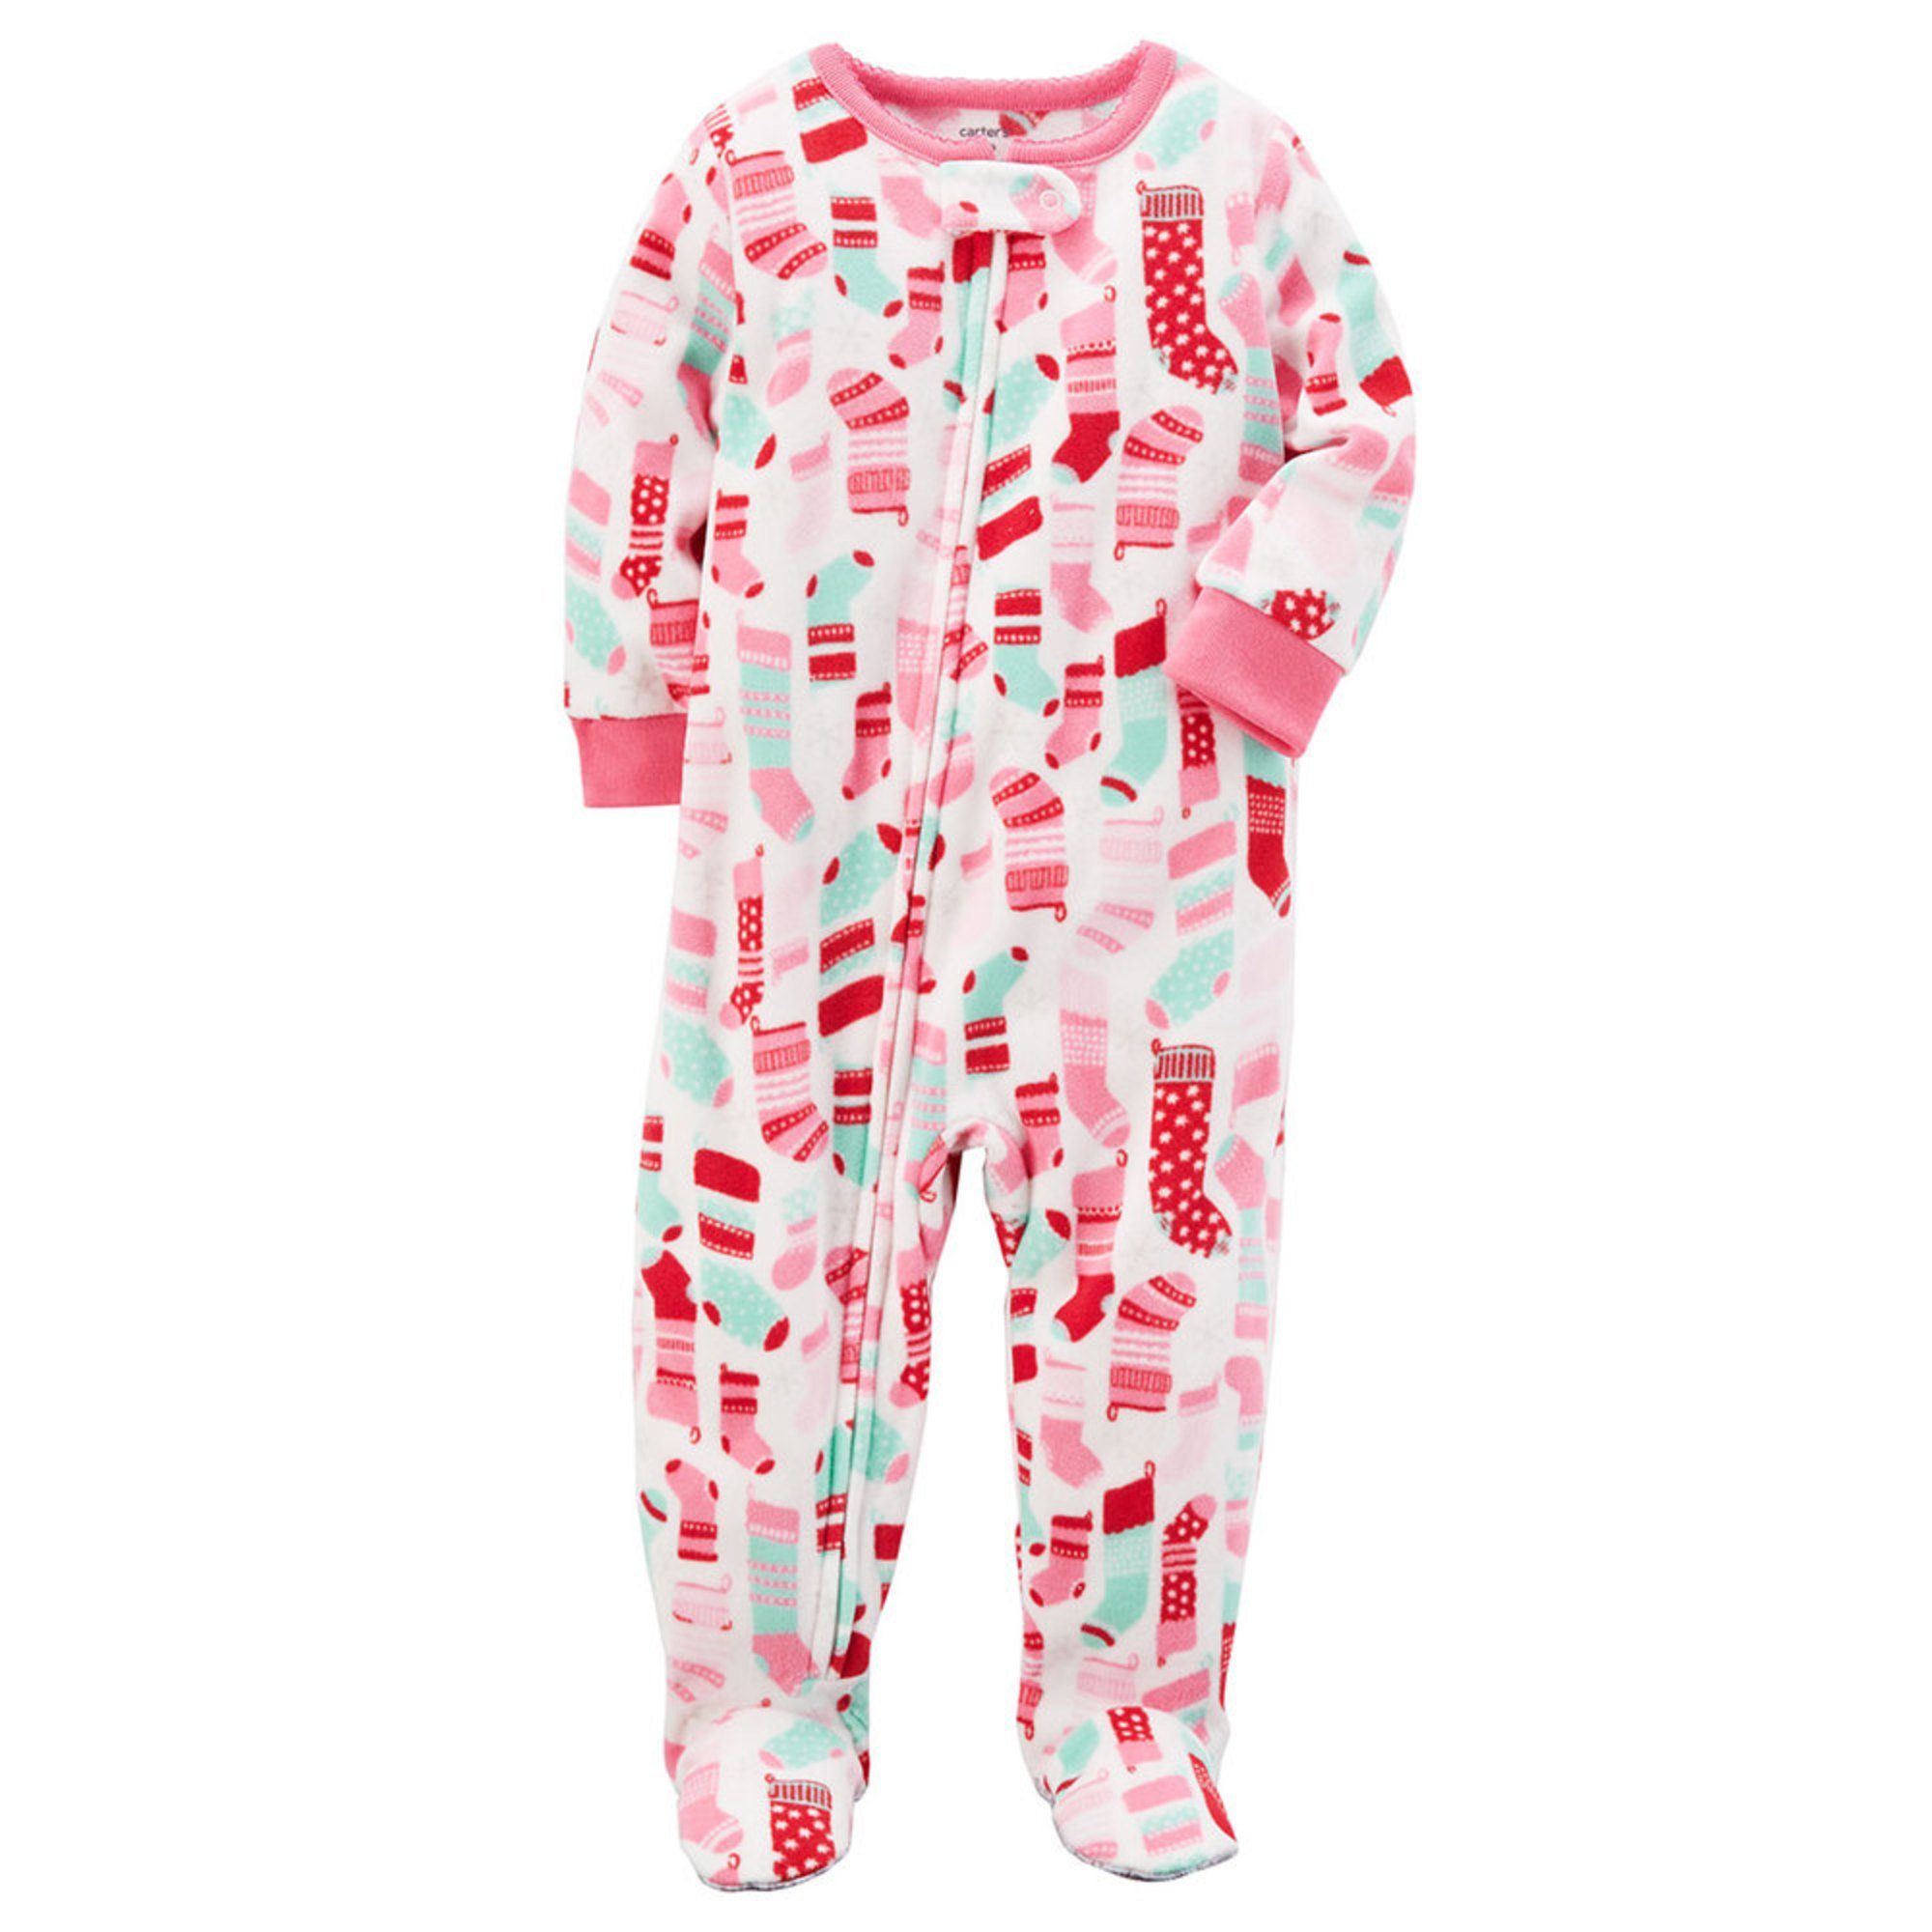 Pajamas Clearance/Closeout Baby Clothes at Macy's come in a variety of styles and sizes. Shop Pajamas Clearance/Closeout Baby Clothes at Macy's and find the latest styles for your little one today. Free Shipping Available.